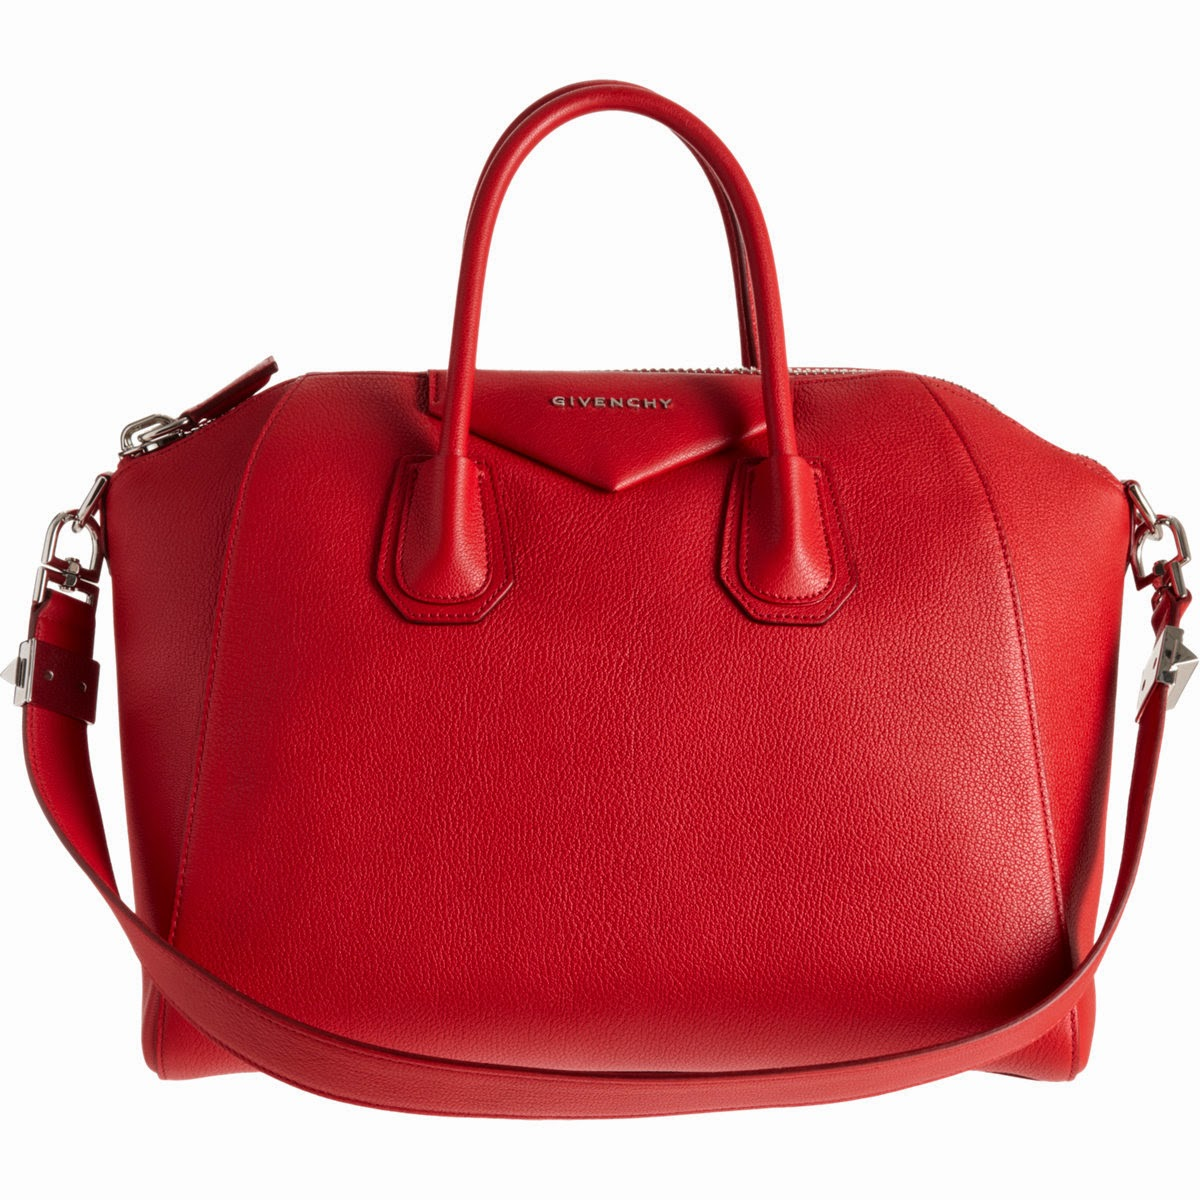 trend alert - red bags, givenchy antigona bag in red